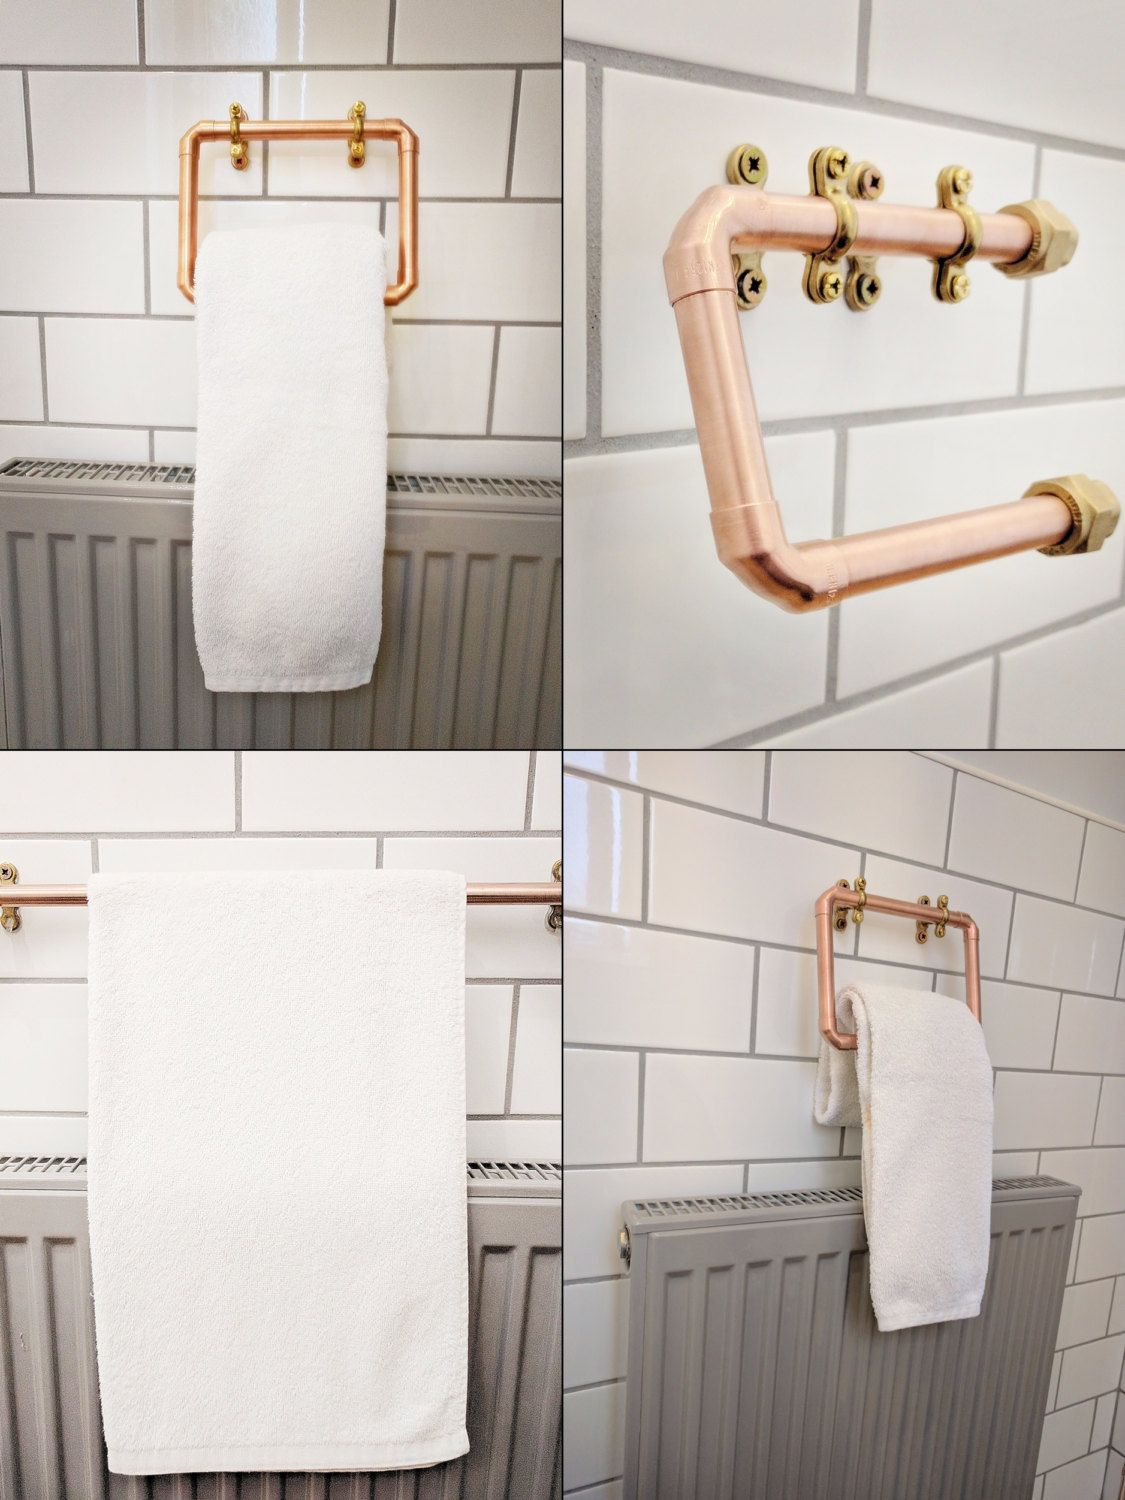 Copper Bathroom Accessory Set With Brass Or Chrome Accents Etsy Vintage Industrial Decor Modern Toilet Roll Holders Copper Bathroom Accessories